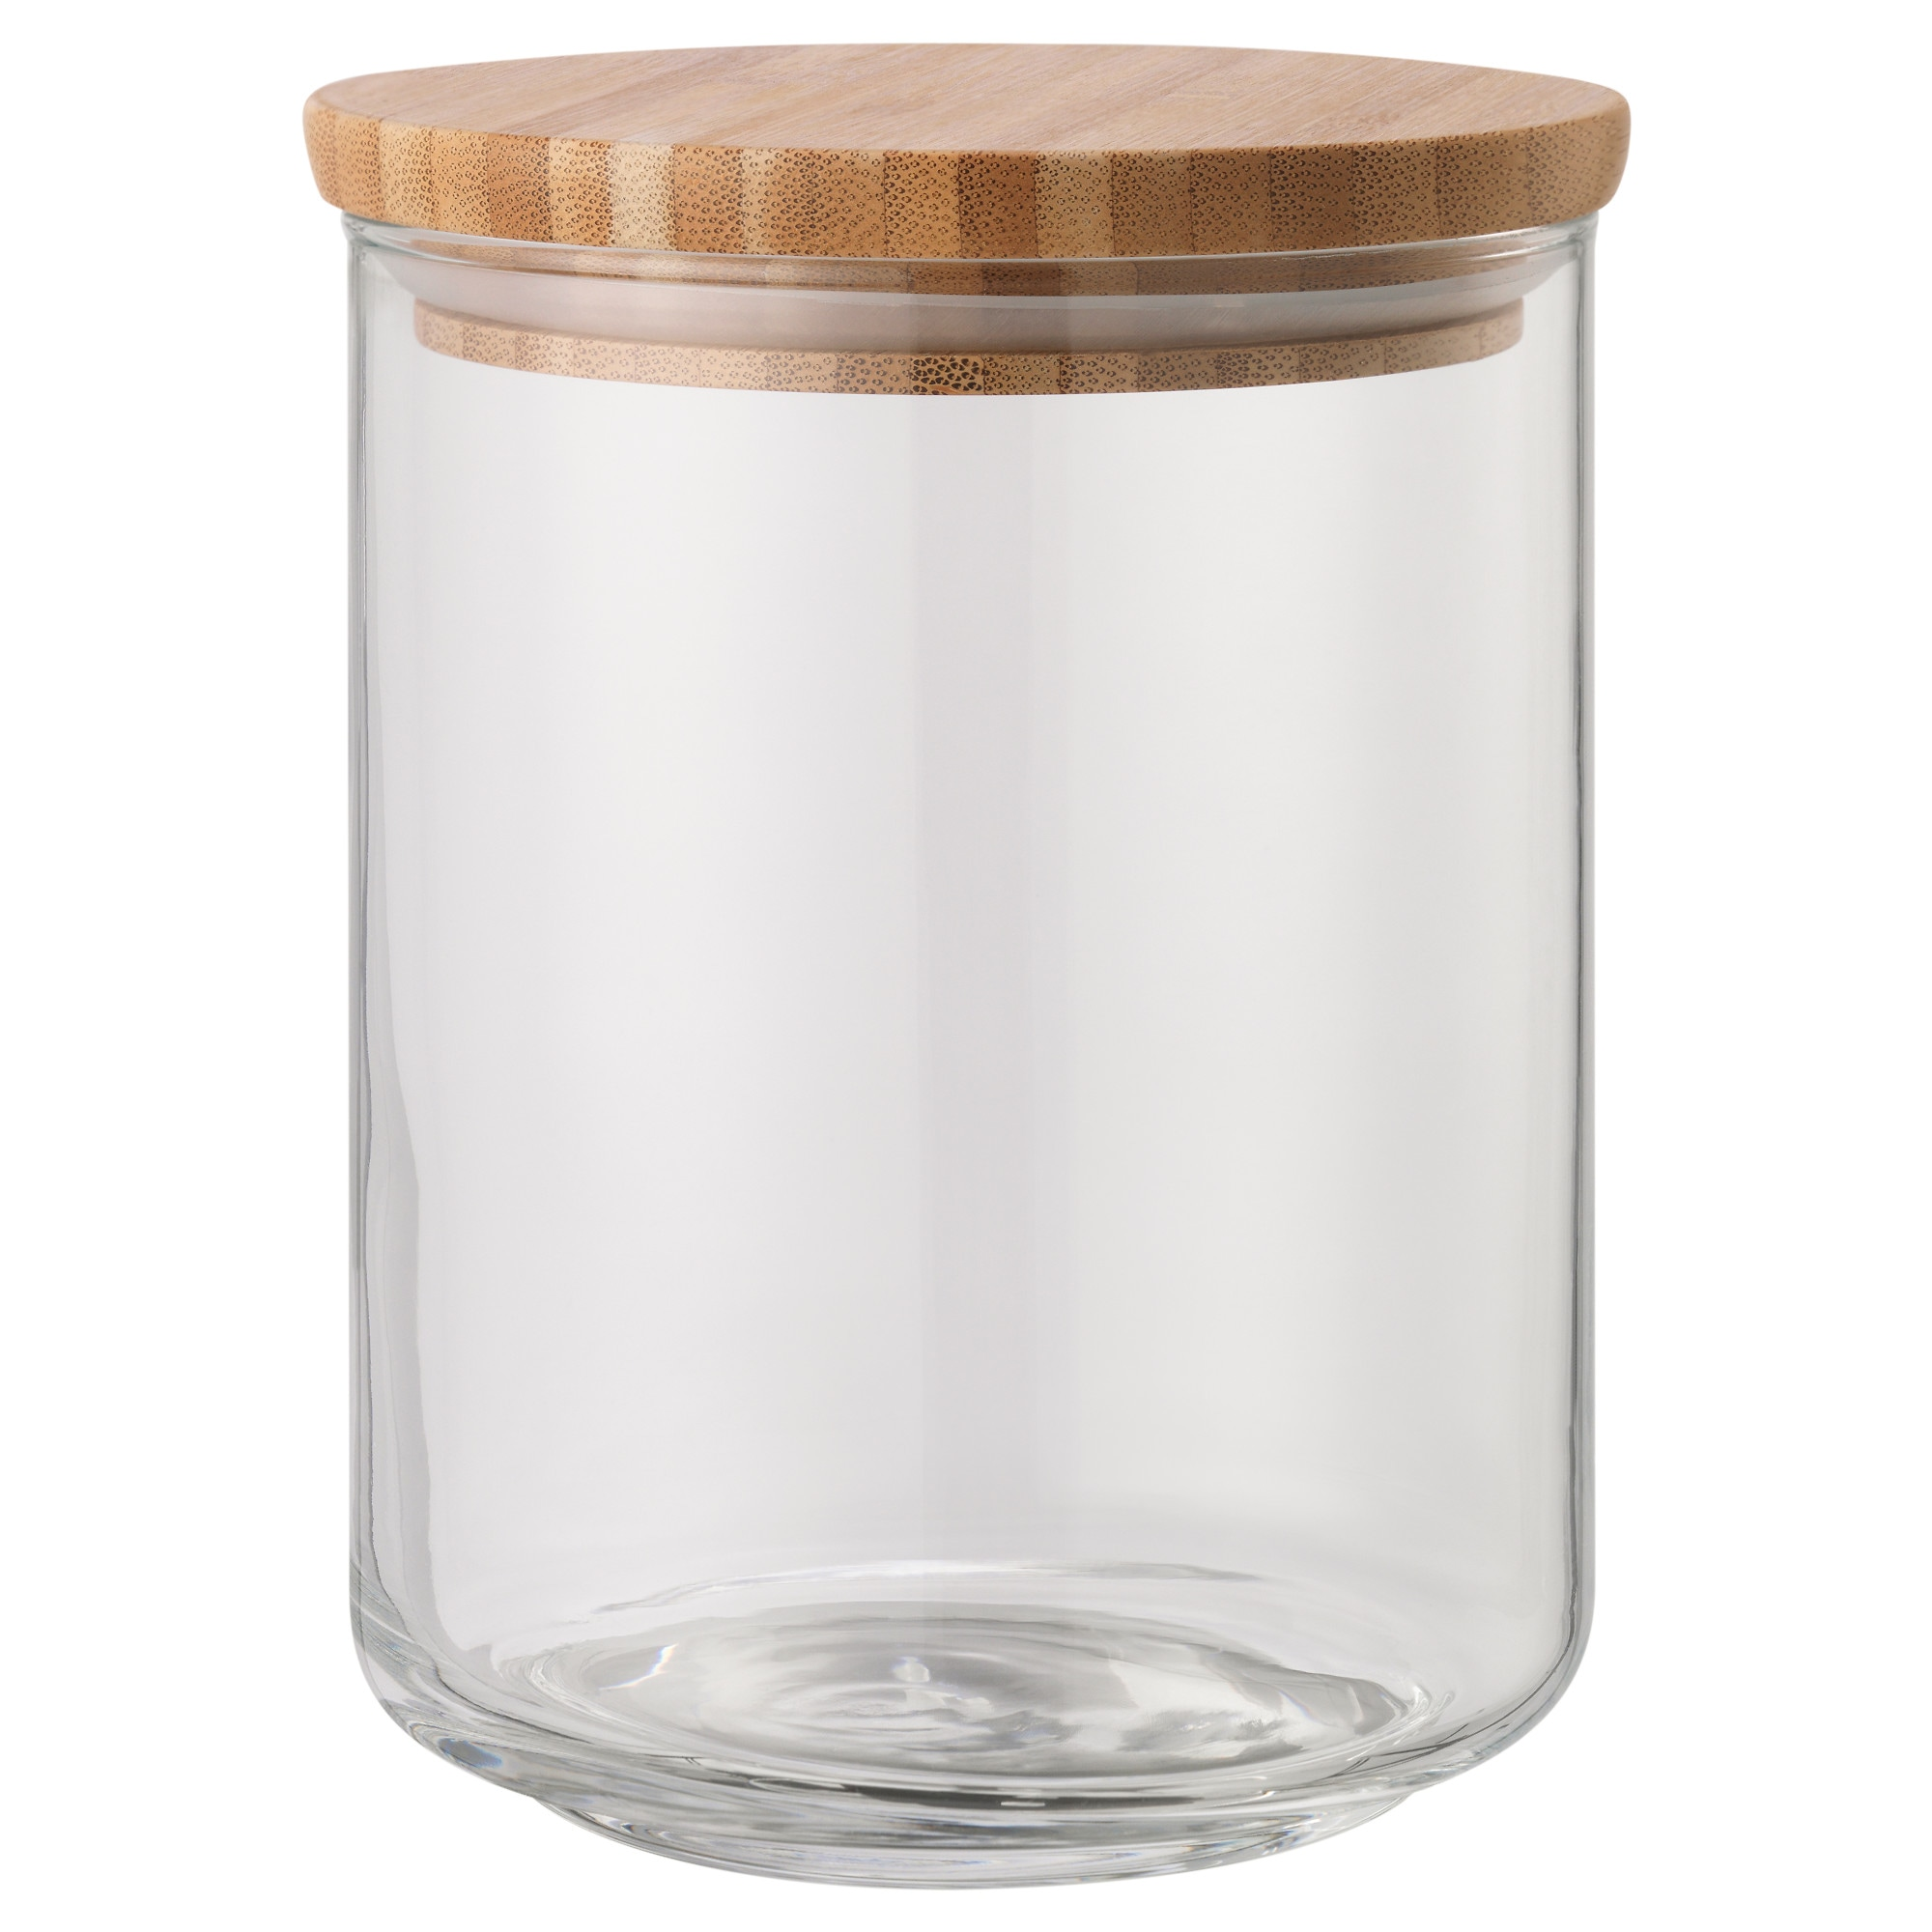 EKLATANT Jar With Lid, Clear Glass, Bamboo Height: 13 Cm Diameter: 10